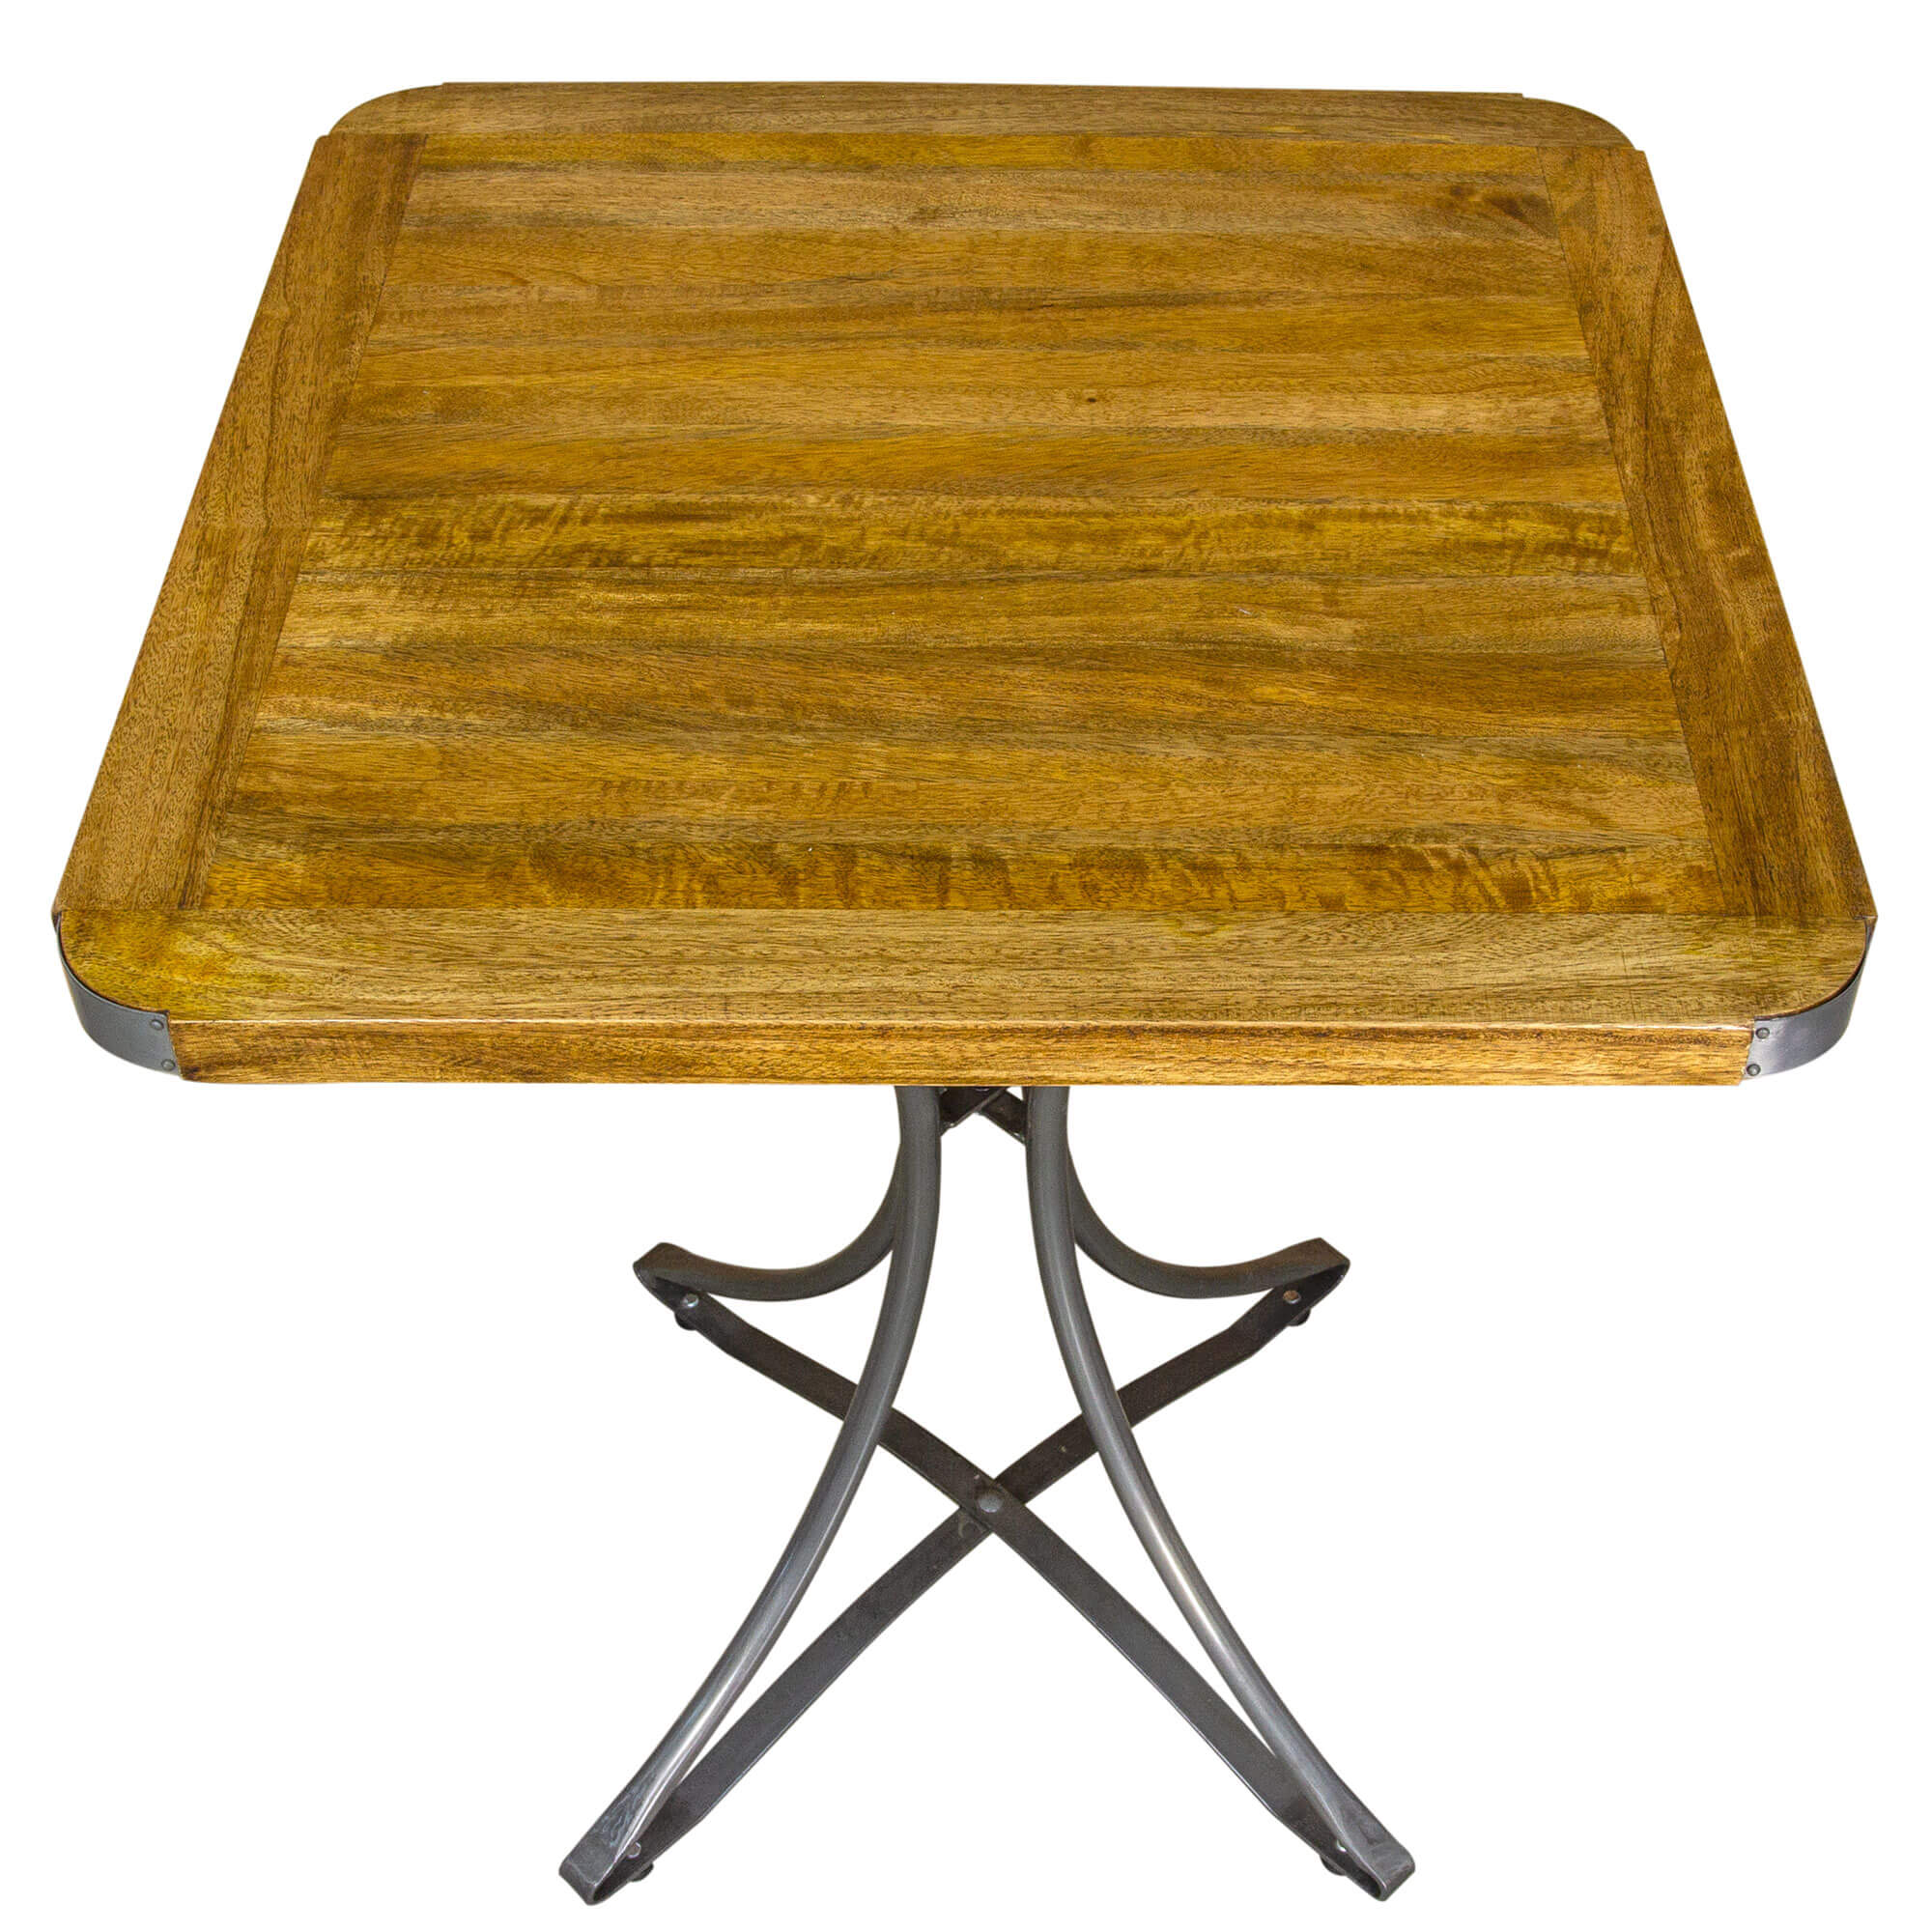 Urban Square Cafe Table (60x60) | Solid Wood |